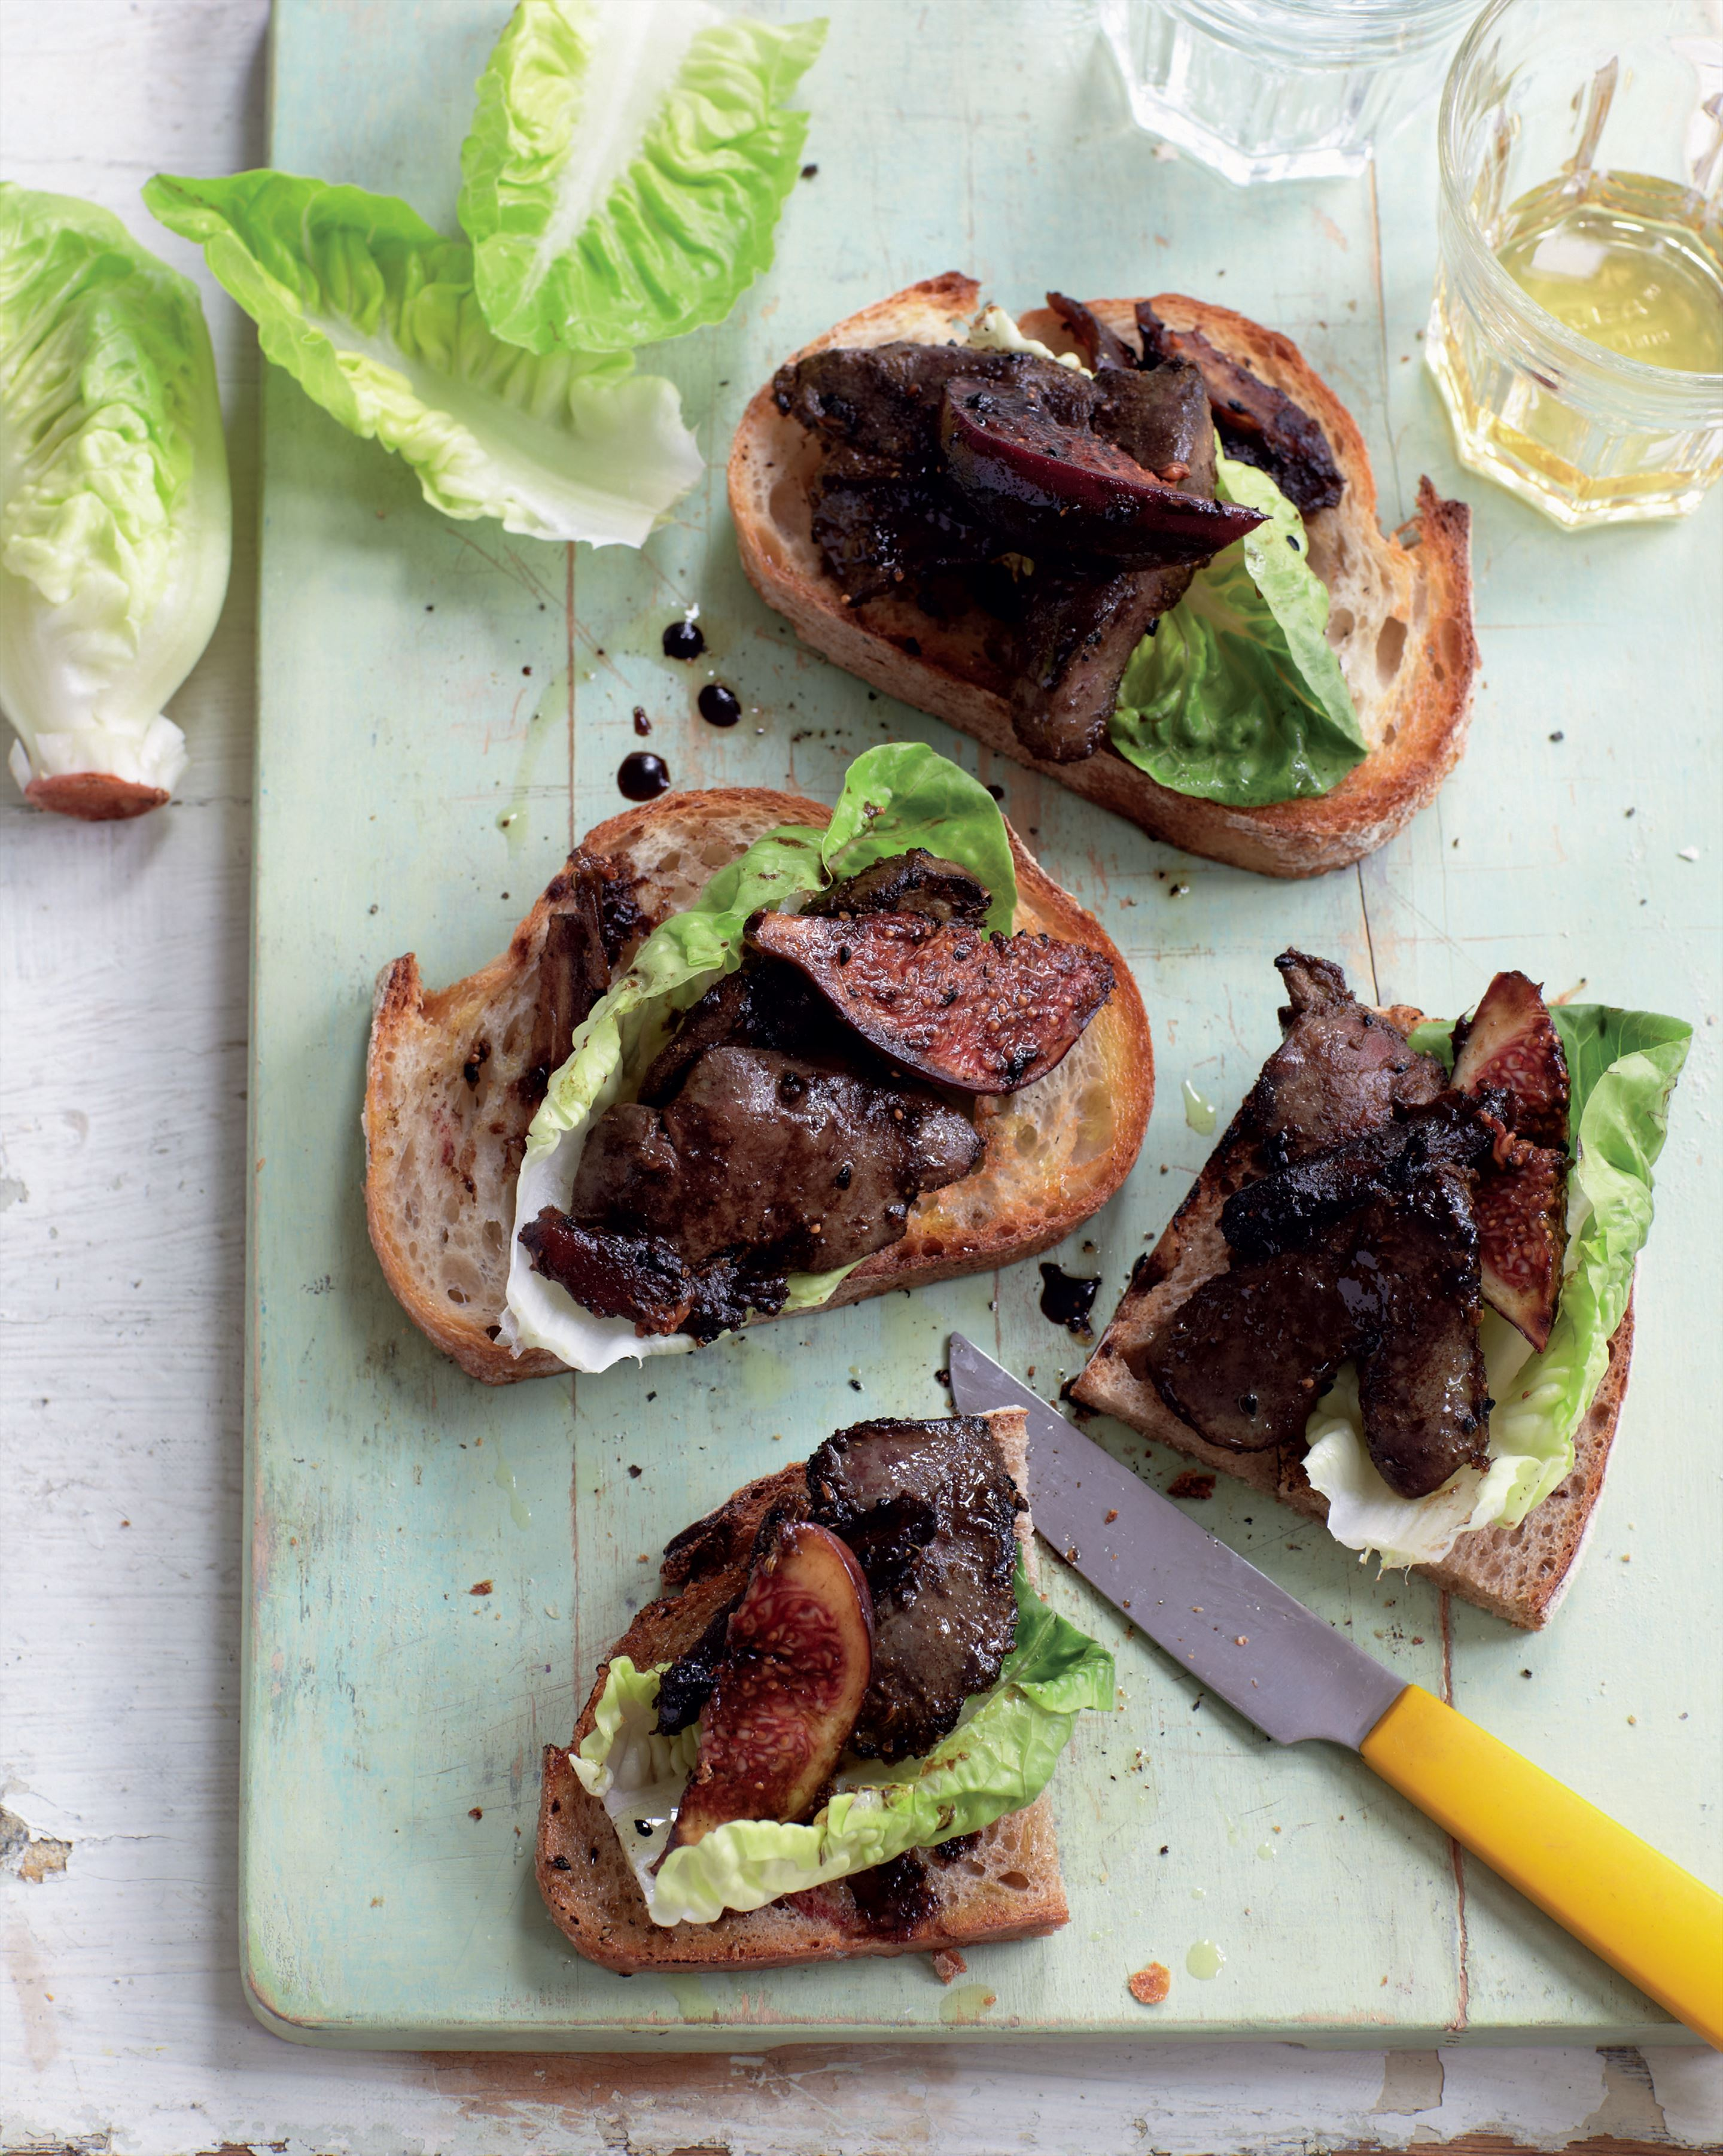 Sticky chicken livers on toast